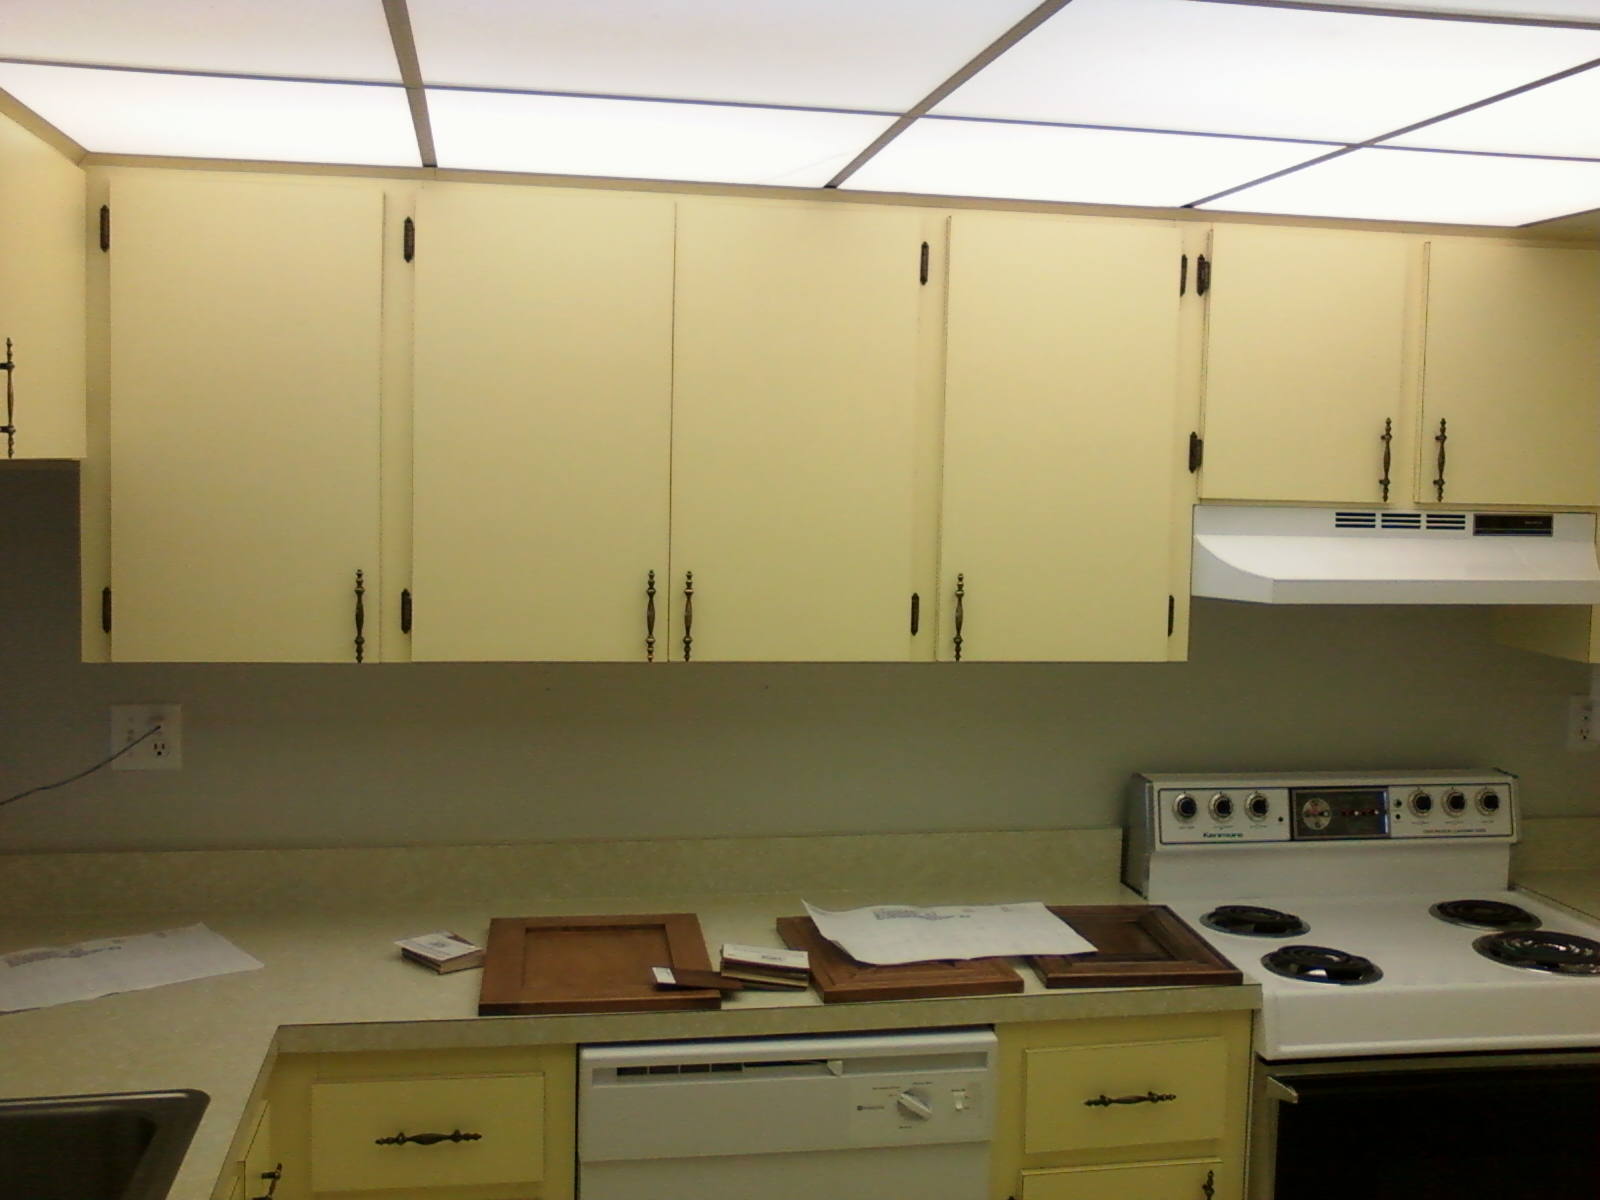 resurface kitchen cabinets kingston brass faucets cabinet refacing pictures before and after facelifts